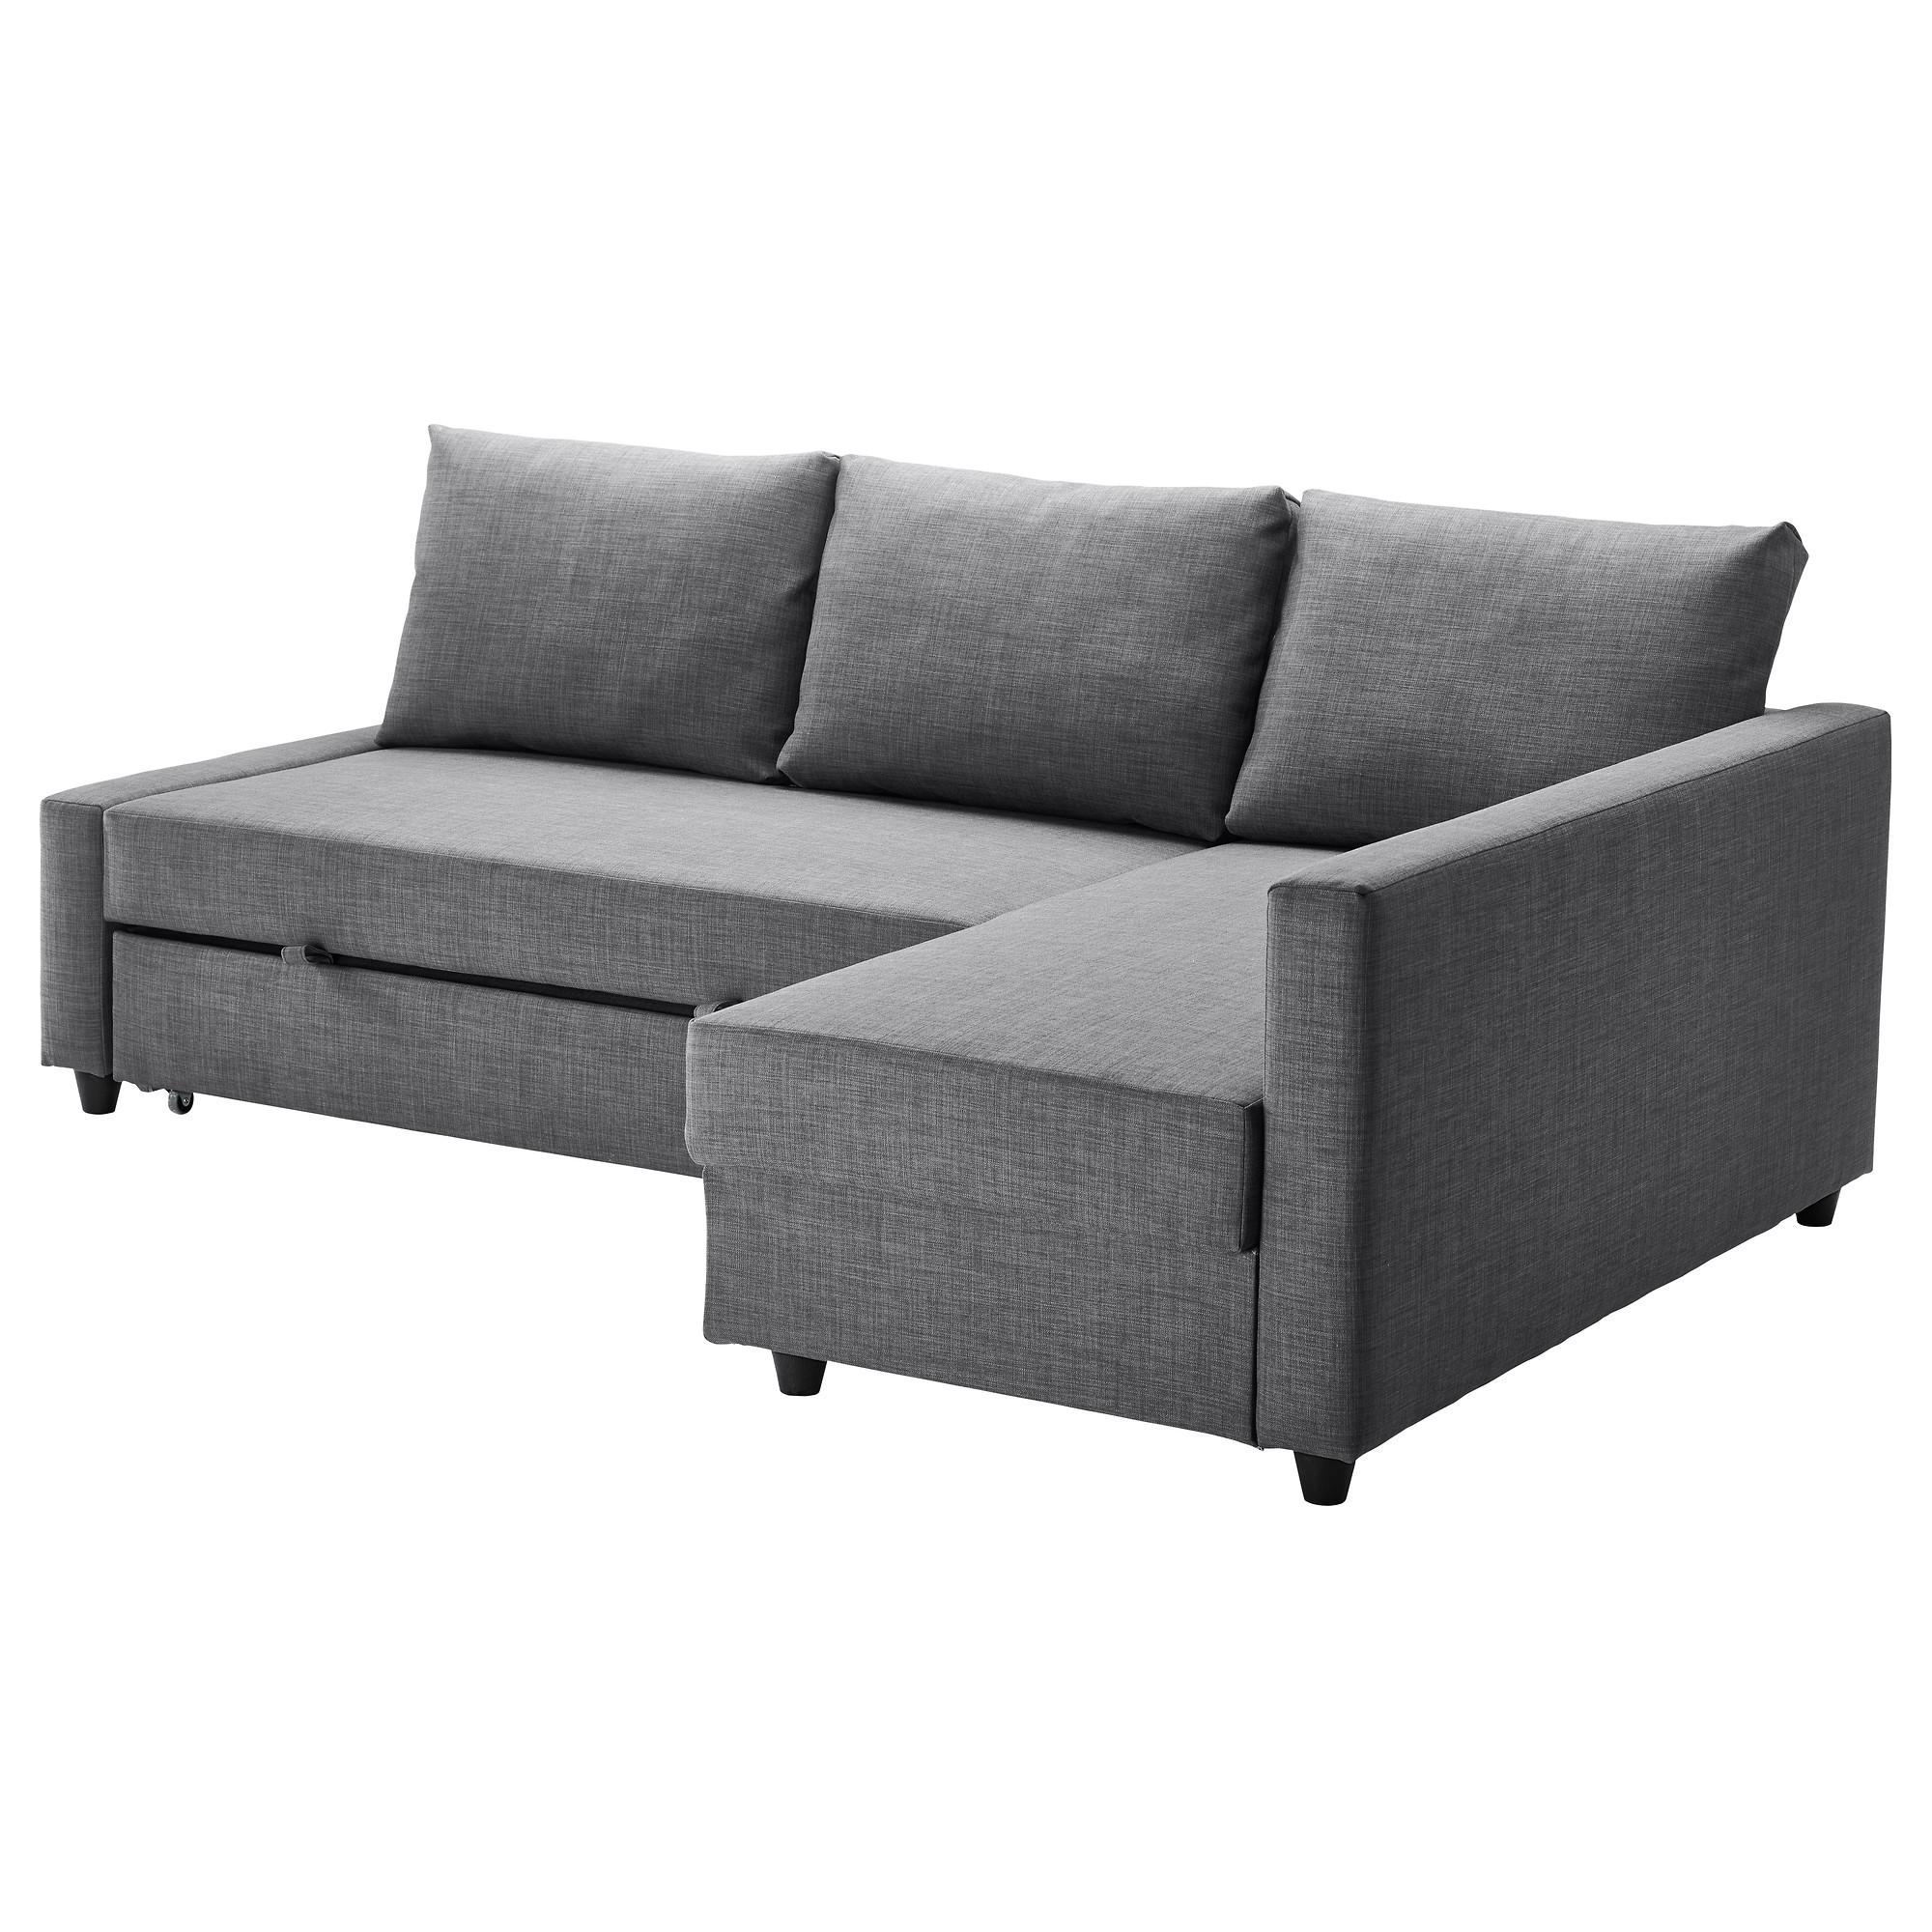 Couch Depth sofa beds & futons - ikea